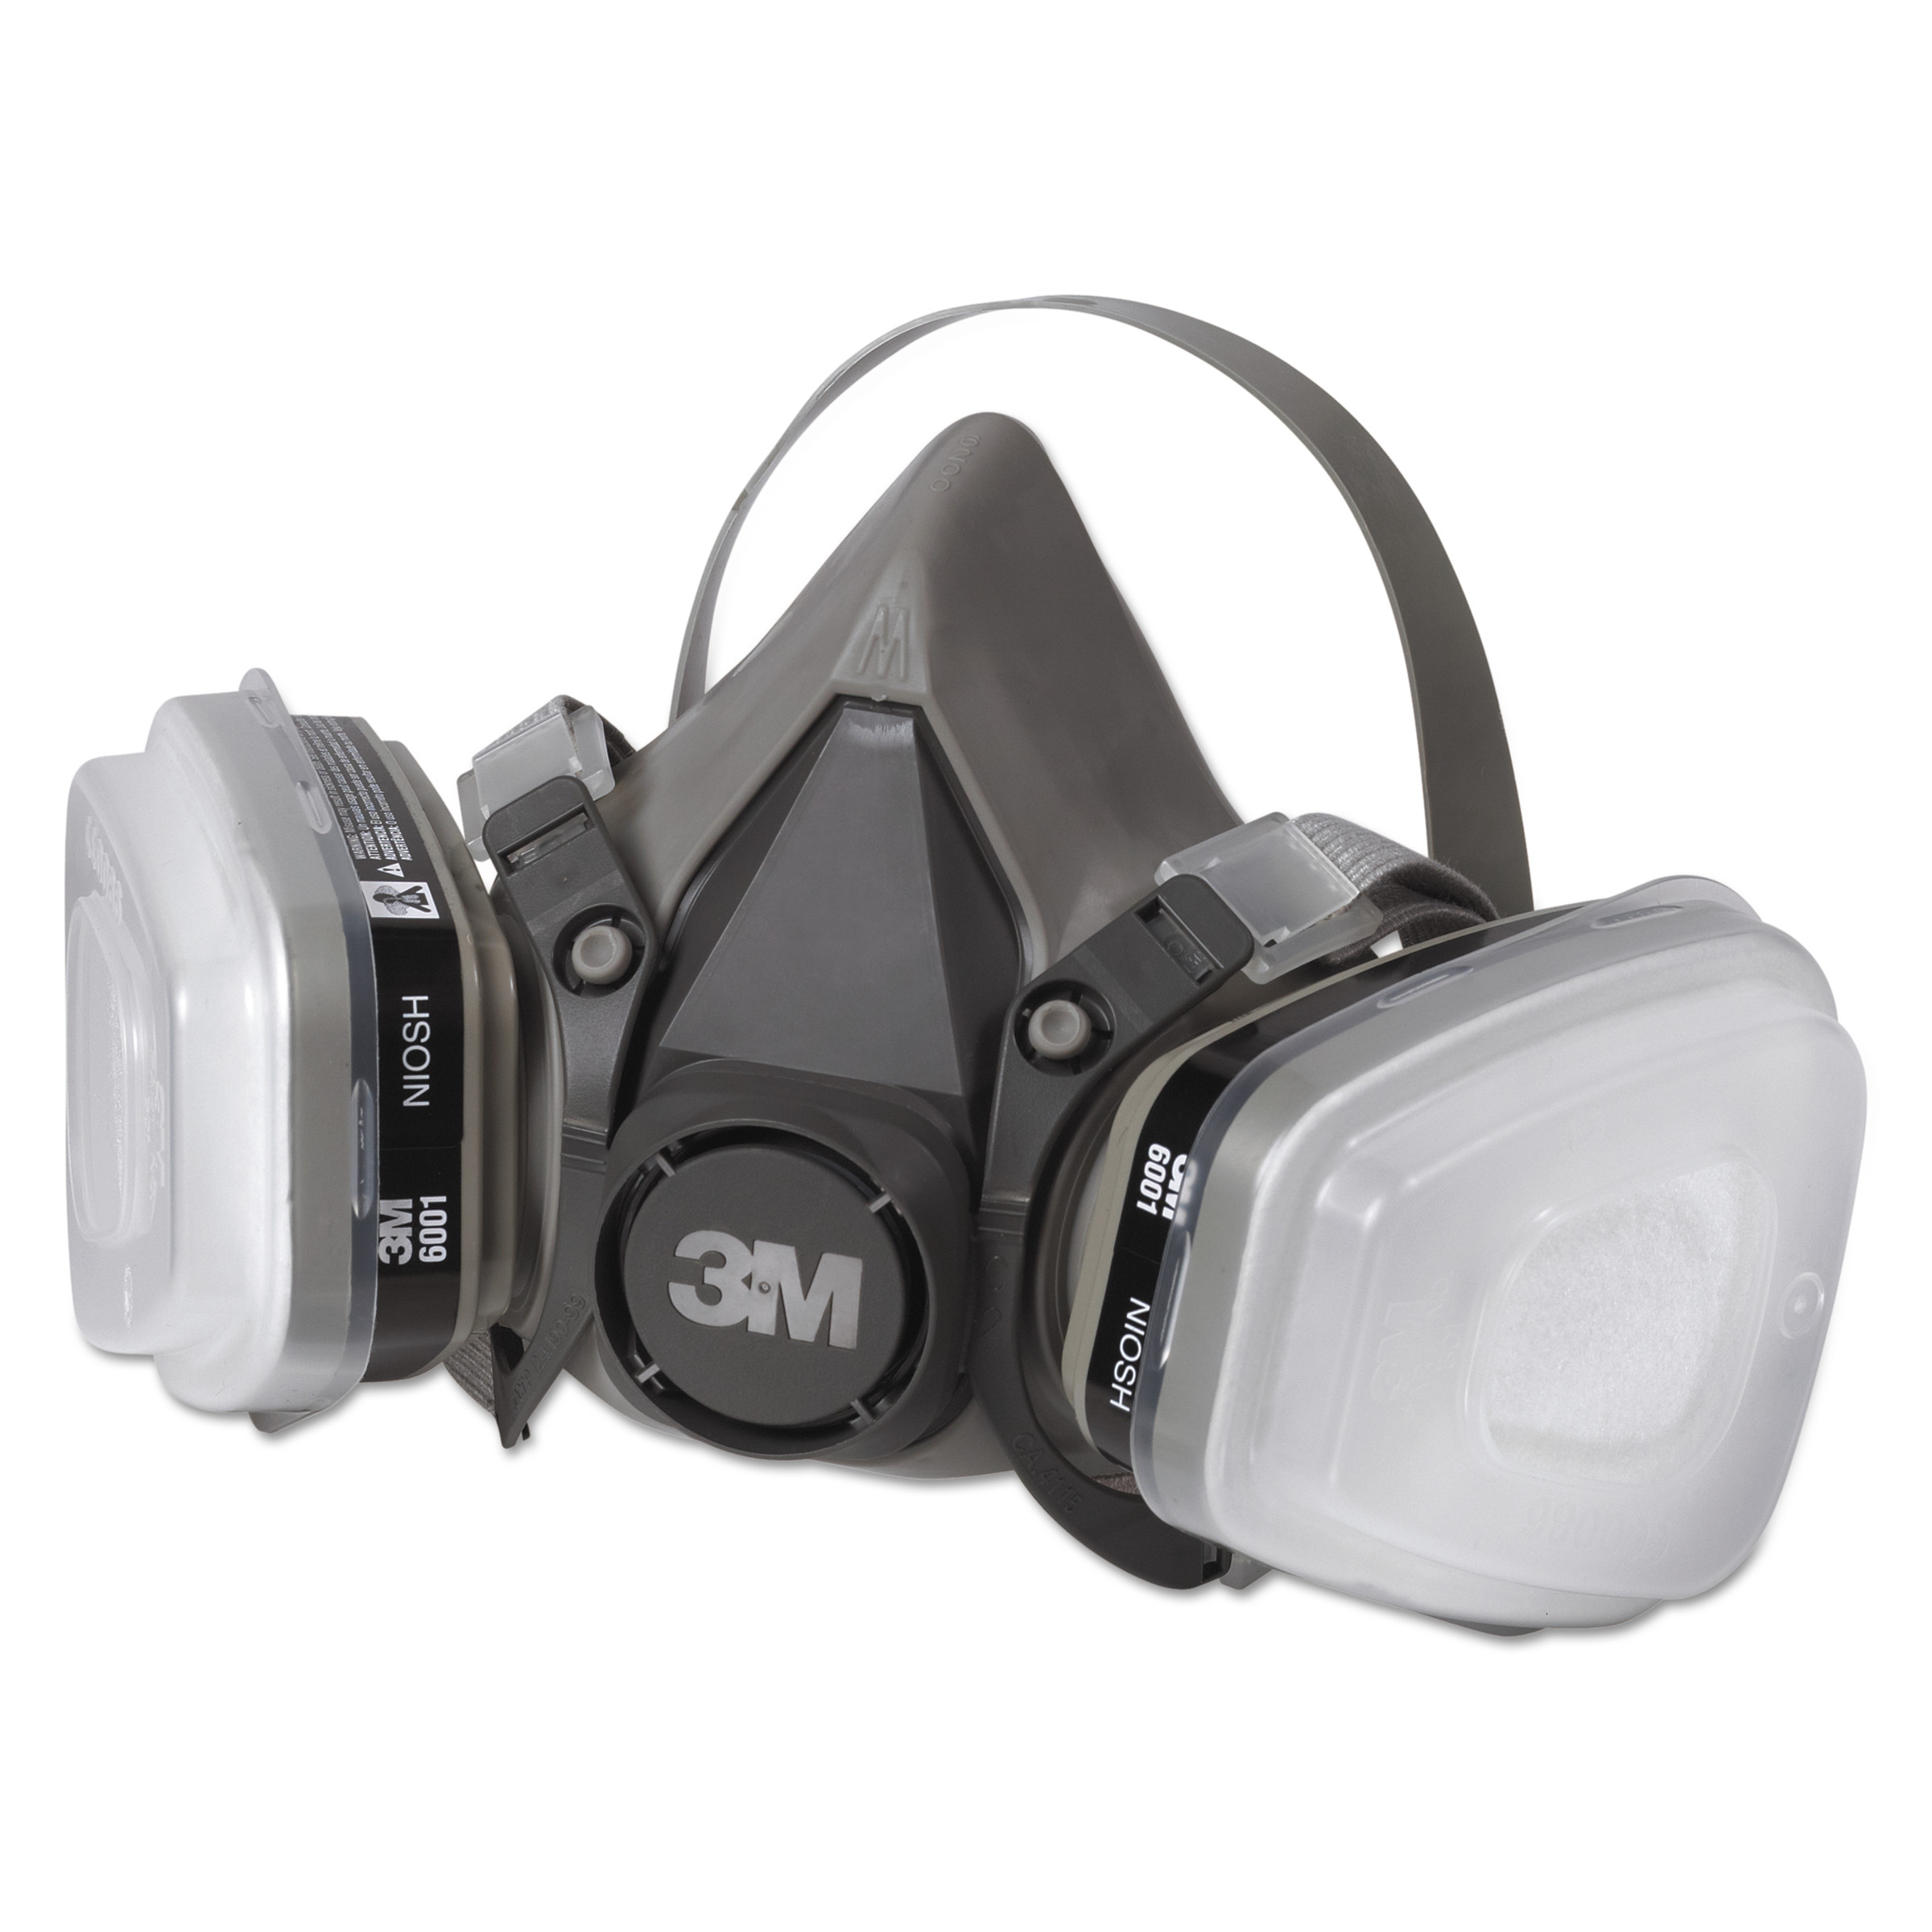 3M Half Facepiece Paint Spray Pesticide Respirator, Small by 3M/COMMERCIAL TAPE DIV.